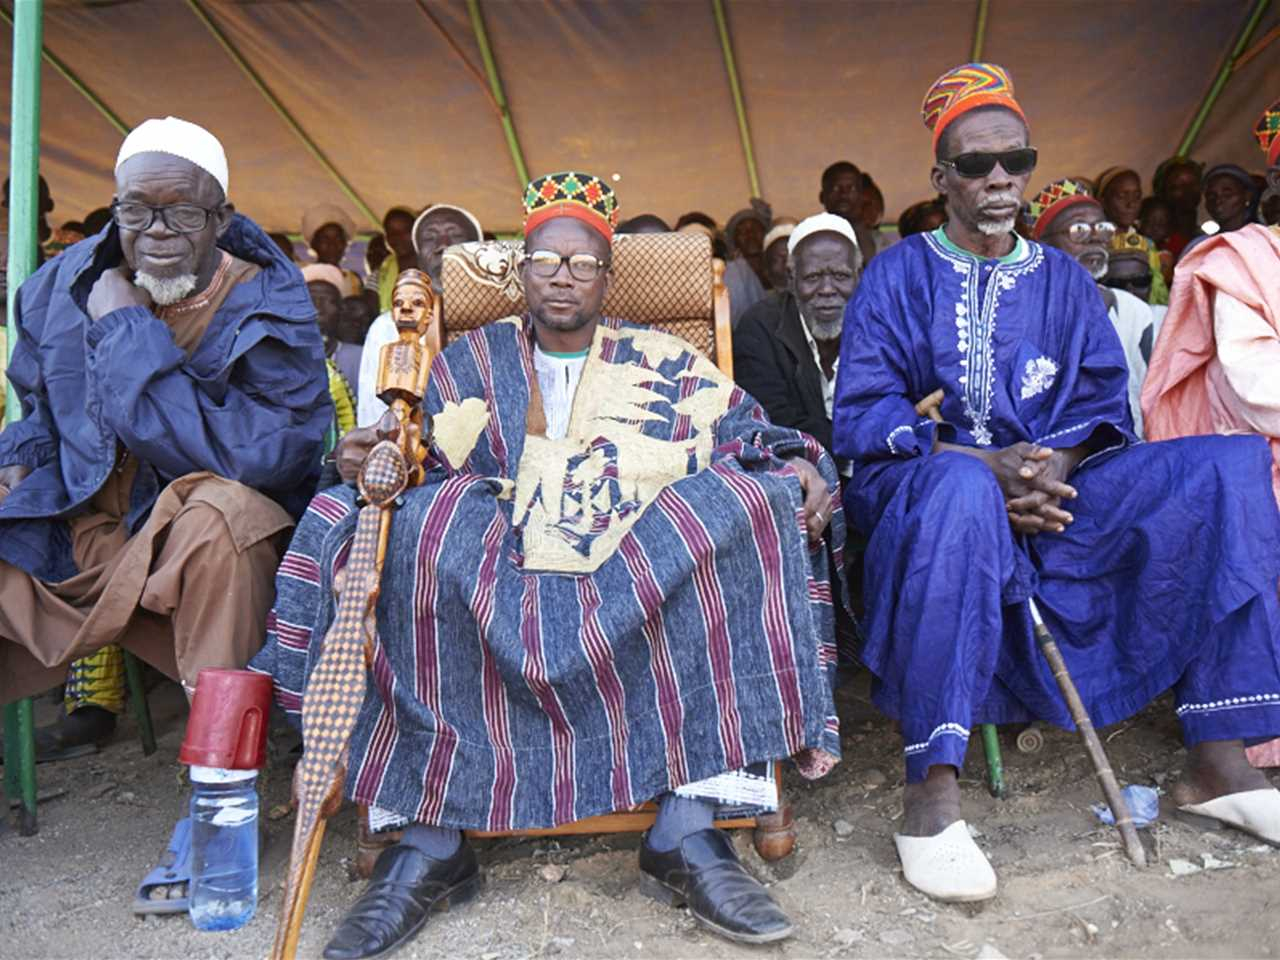 Chiefs of the Gando village, and representatives of regional and local authorities, politics, …